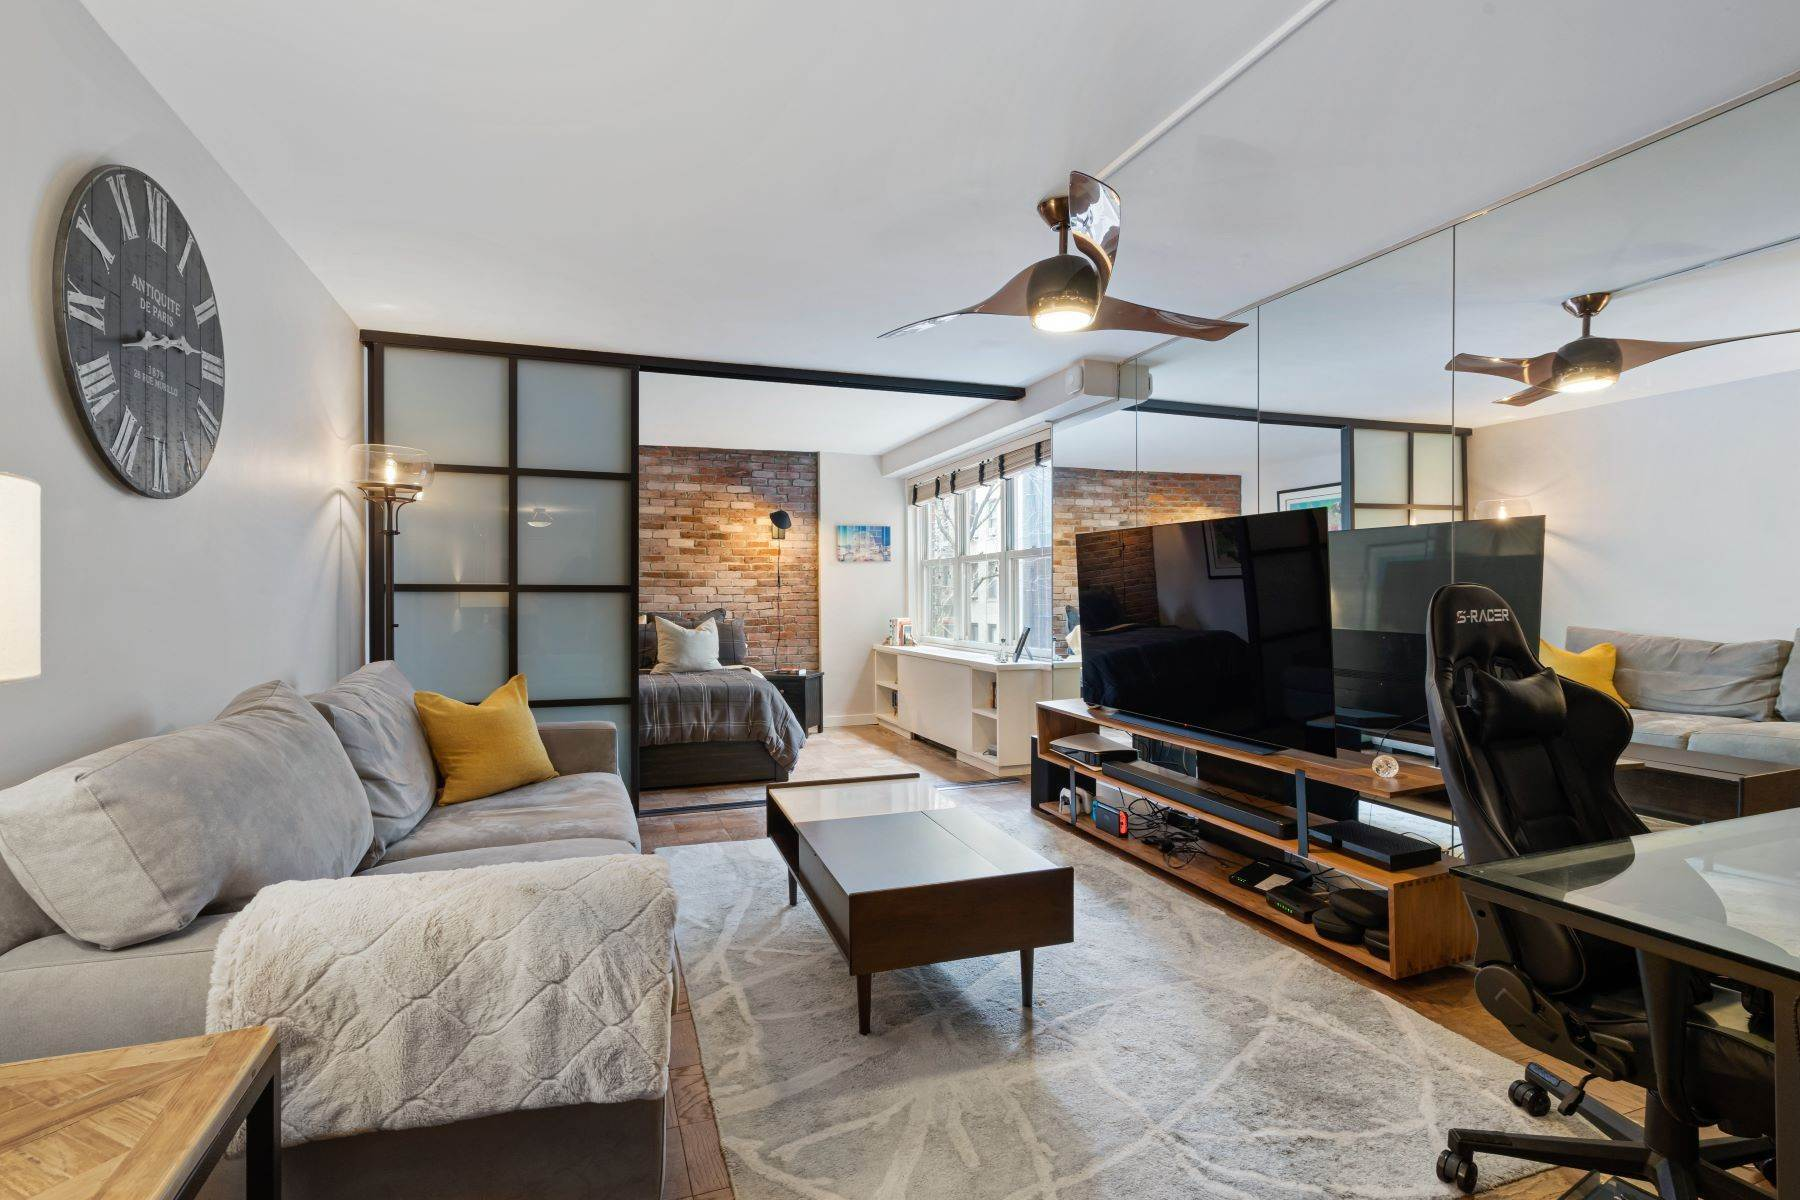 Co-op Properties for Sale at 363 East 76th Street, Apt 3J New York, New York 10075 United States